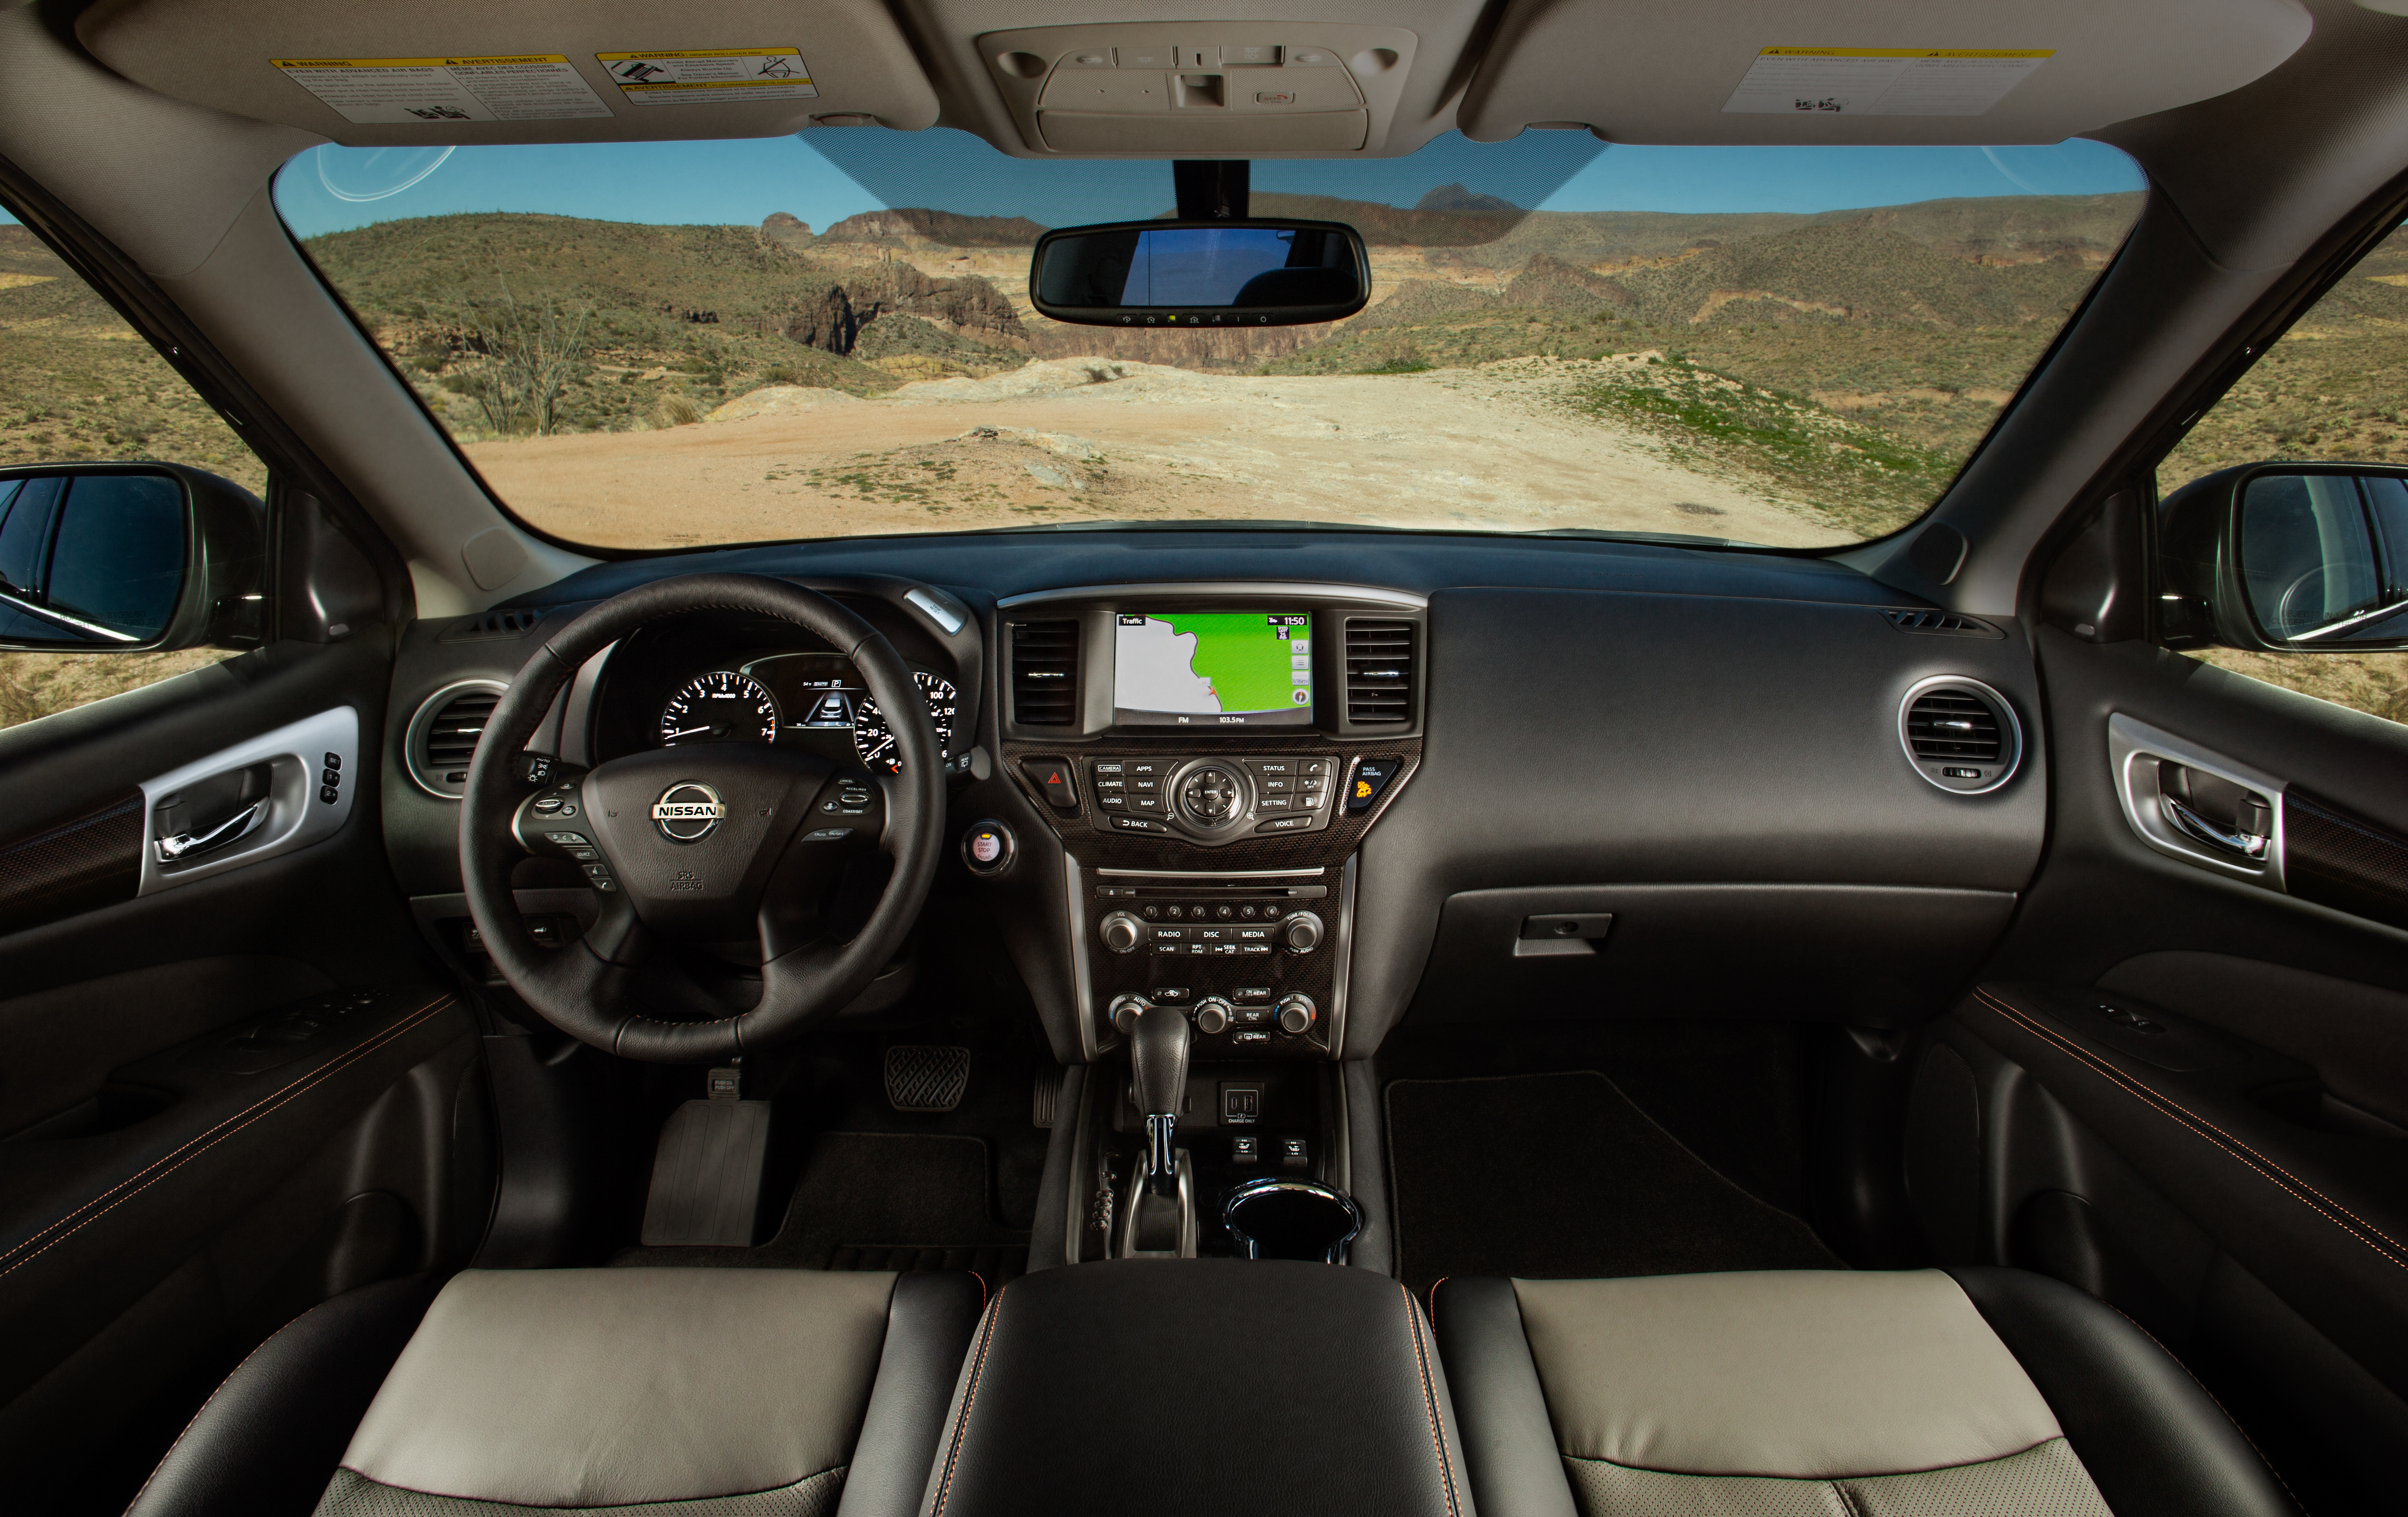 What S Included In The 2019 Nissan Pathfinder Rock Creek Edition Package